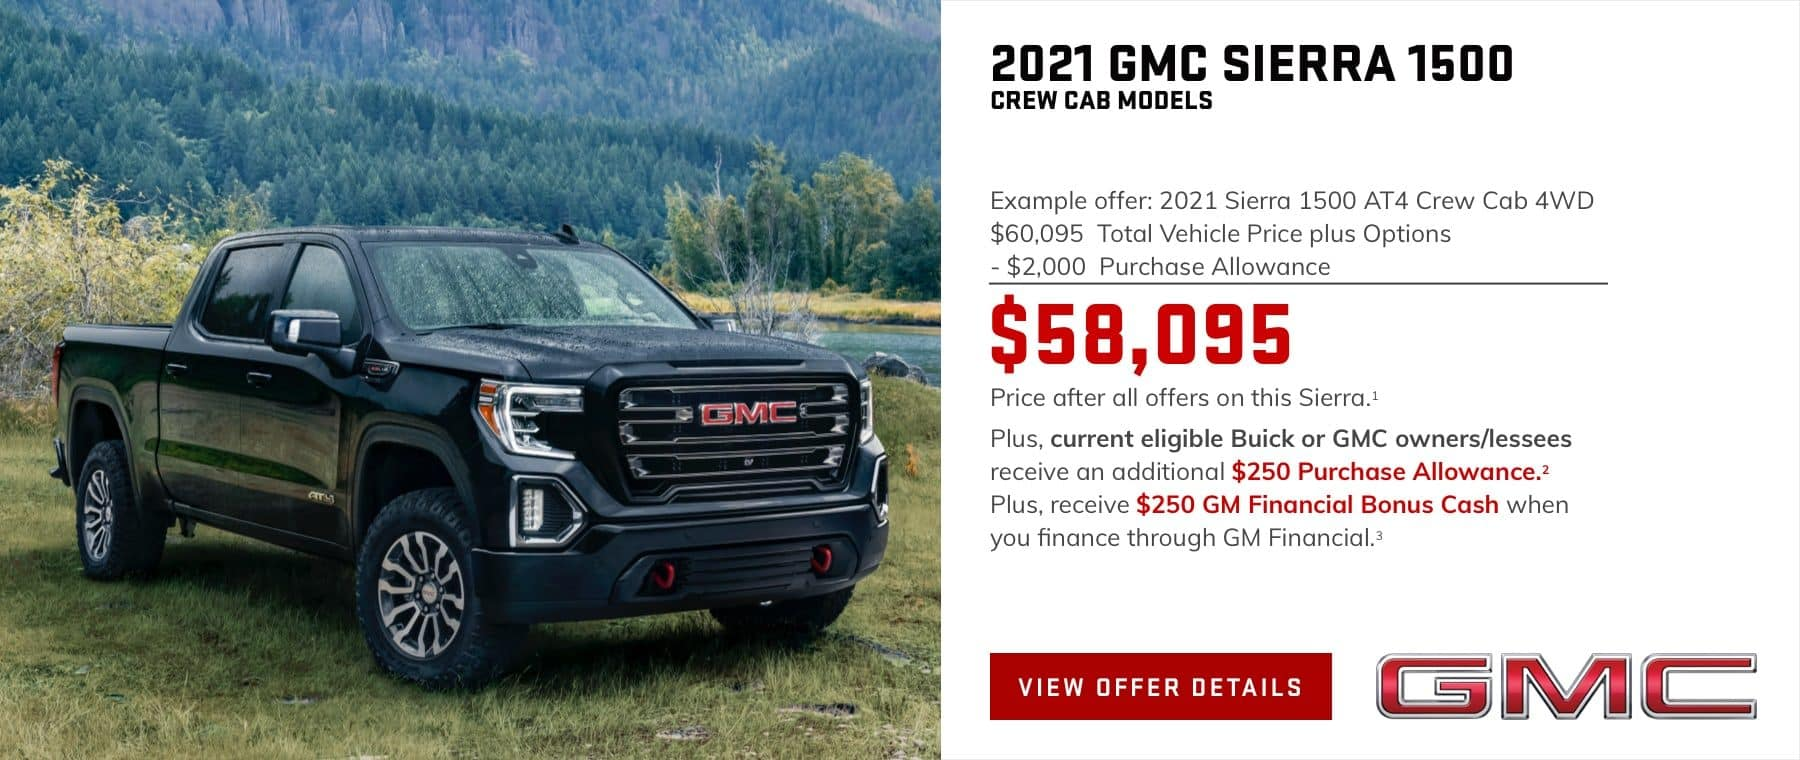 Example offer: 2021 Sierra 1500 AT4 Crew Cab 4WD $60,095 Total Vehicle Price plus Options -$2,000 Purchase Allowance $58,095 Price after all offers on this Sierra.1 Plus, current eligible Buick or GMC owners/lessees receive an additional $250 Purchase Allowance.2 Plus, receive $250 GM Financial Bonus Cash when you finance through GM Financial.3